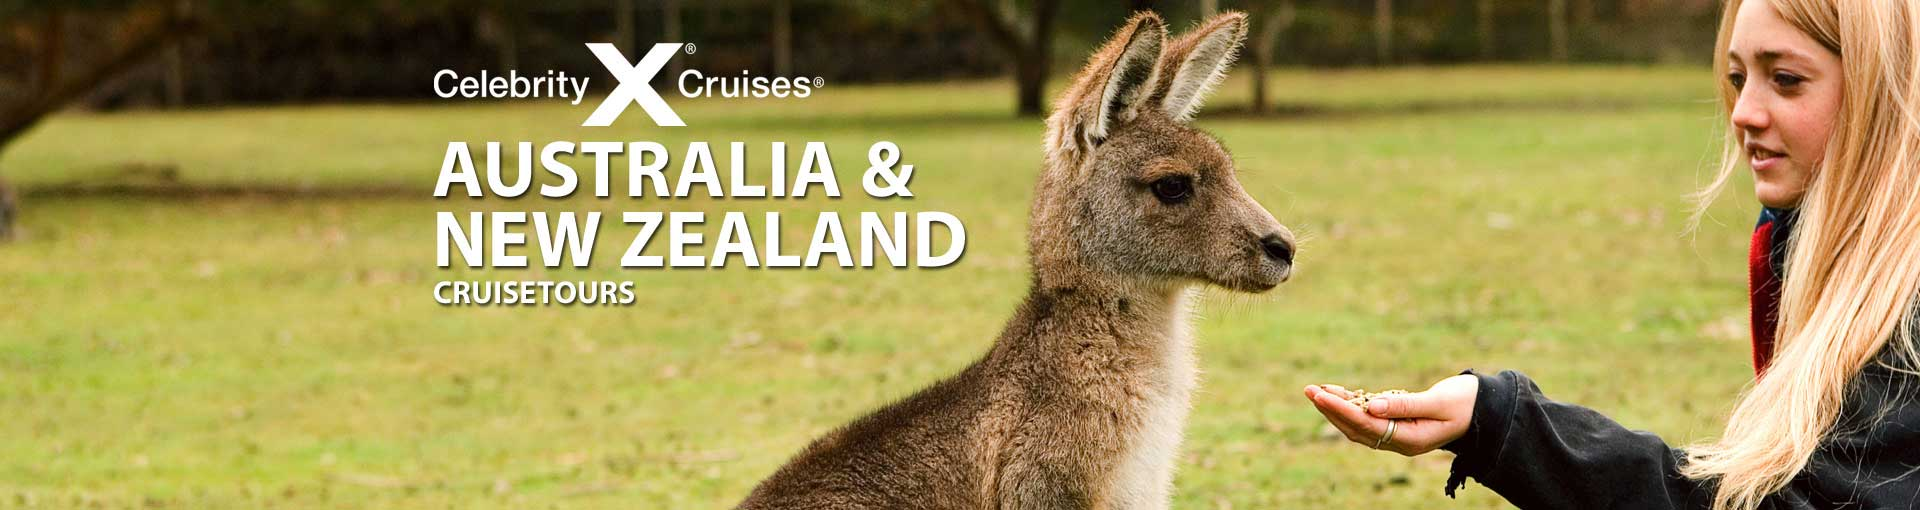 Celebrity Australia New Zealand Cruisetours